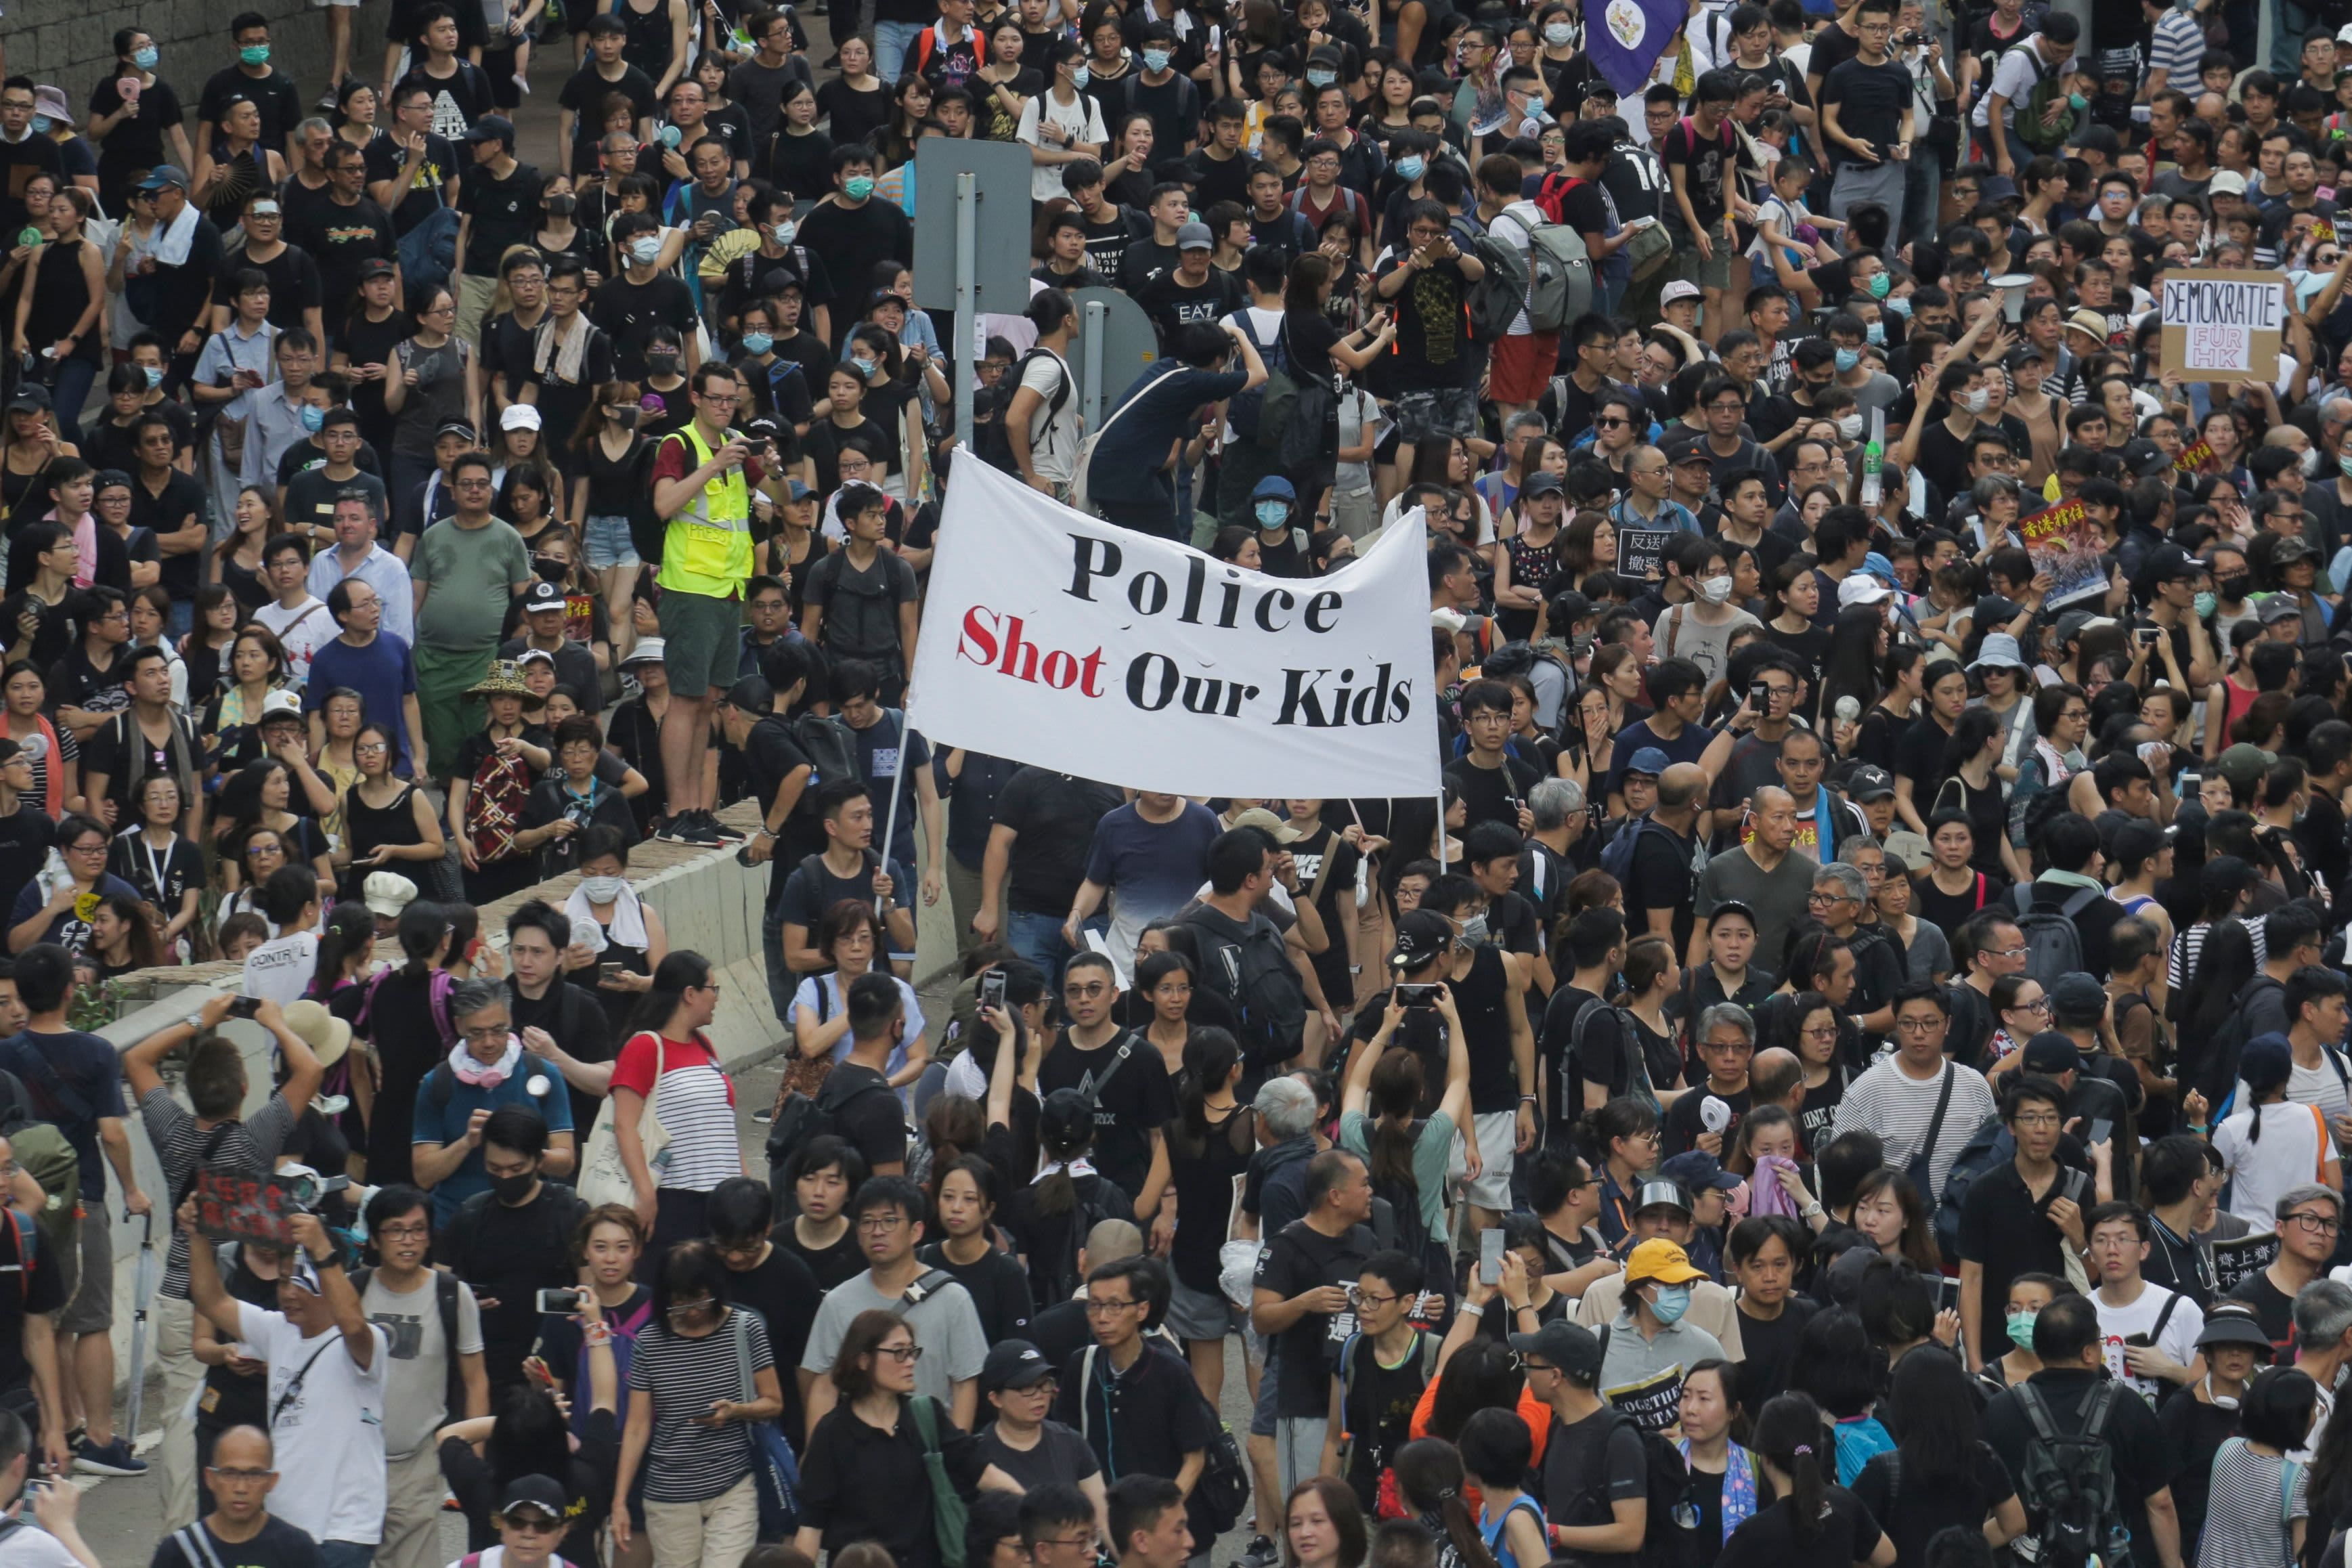 Hong Kong protesters march again, this time taking their message to mainland Chinese tourists